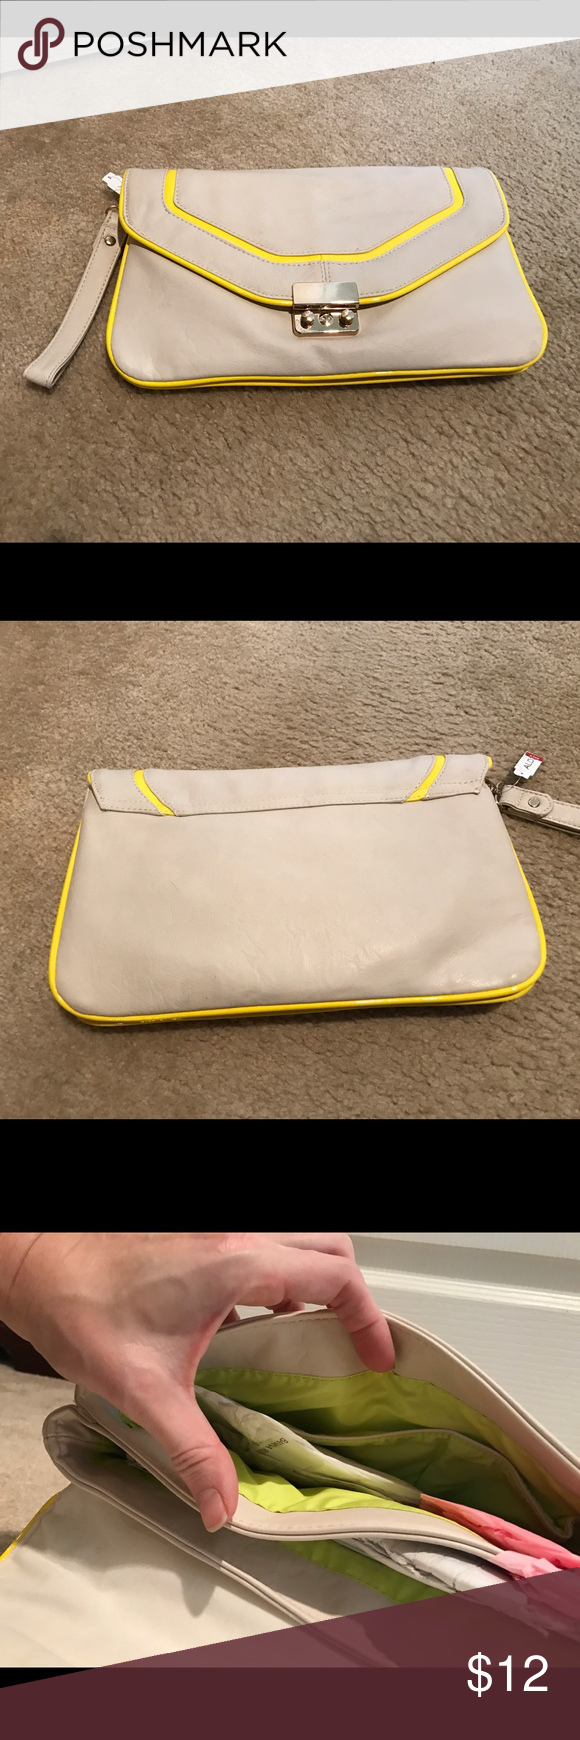 Aldo New with Tags Clutch - stone with yellow trim This clutch is brand new in an off white/stone color with with yellow patent leather looking trim. It is a decent sized clutch with a wrist strap. See photo with me holding clutch as a size reference. Interior has 2 compartments and bright green lining. Aldo Bags Clutches & Wristlets